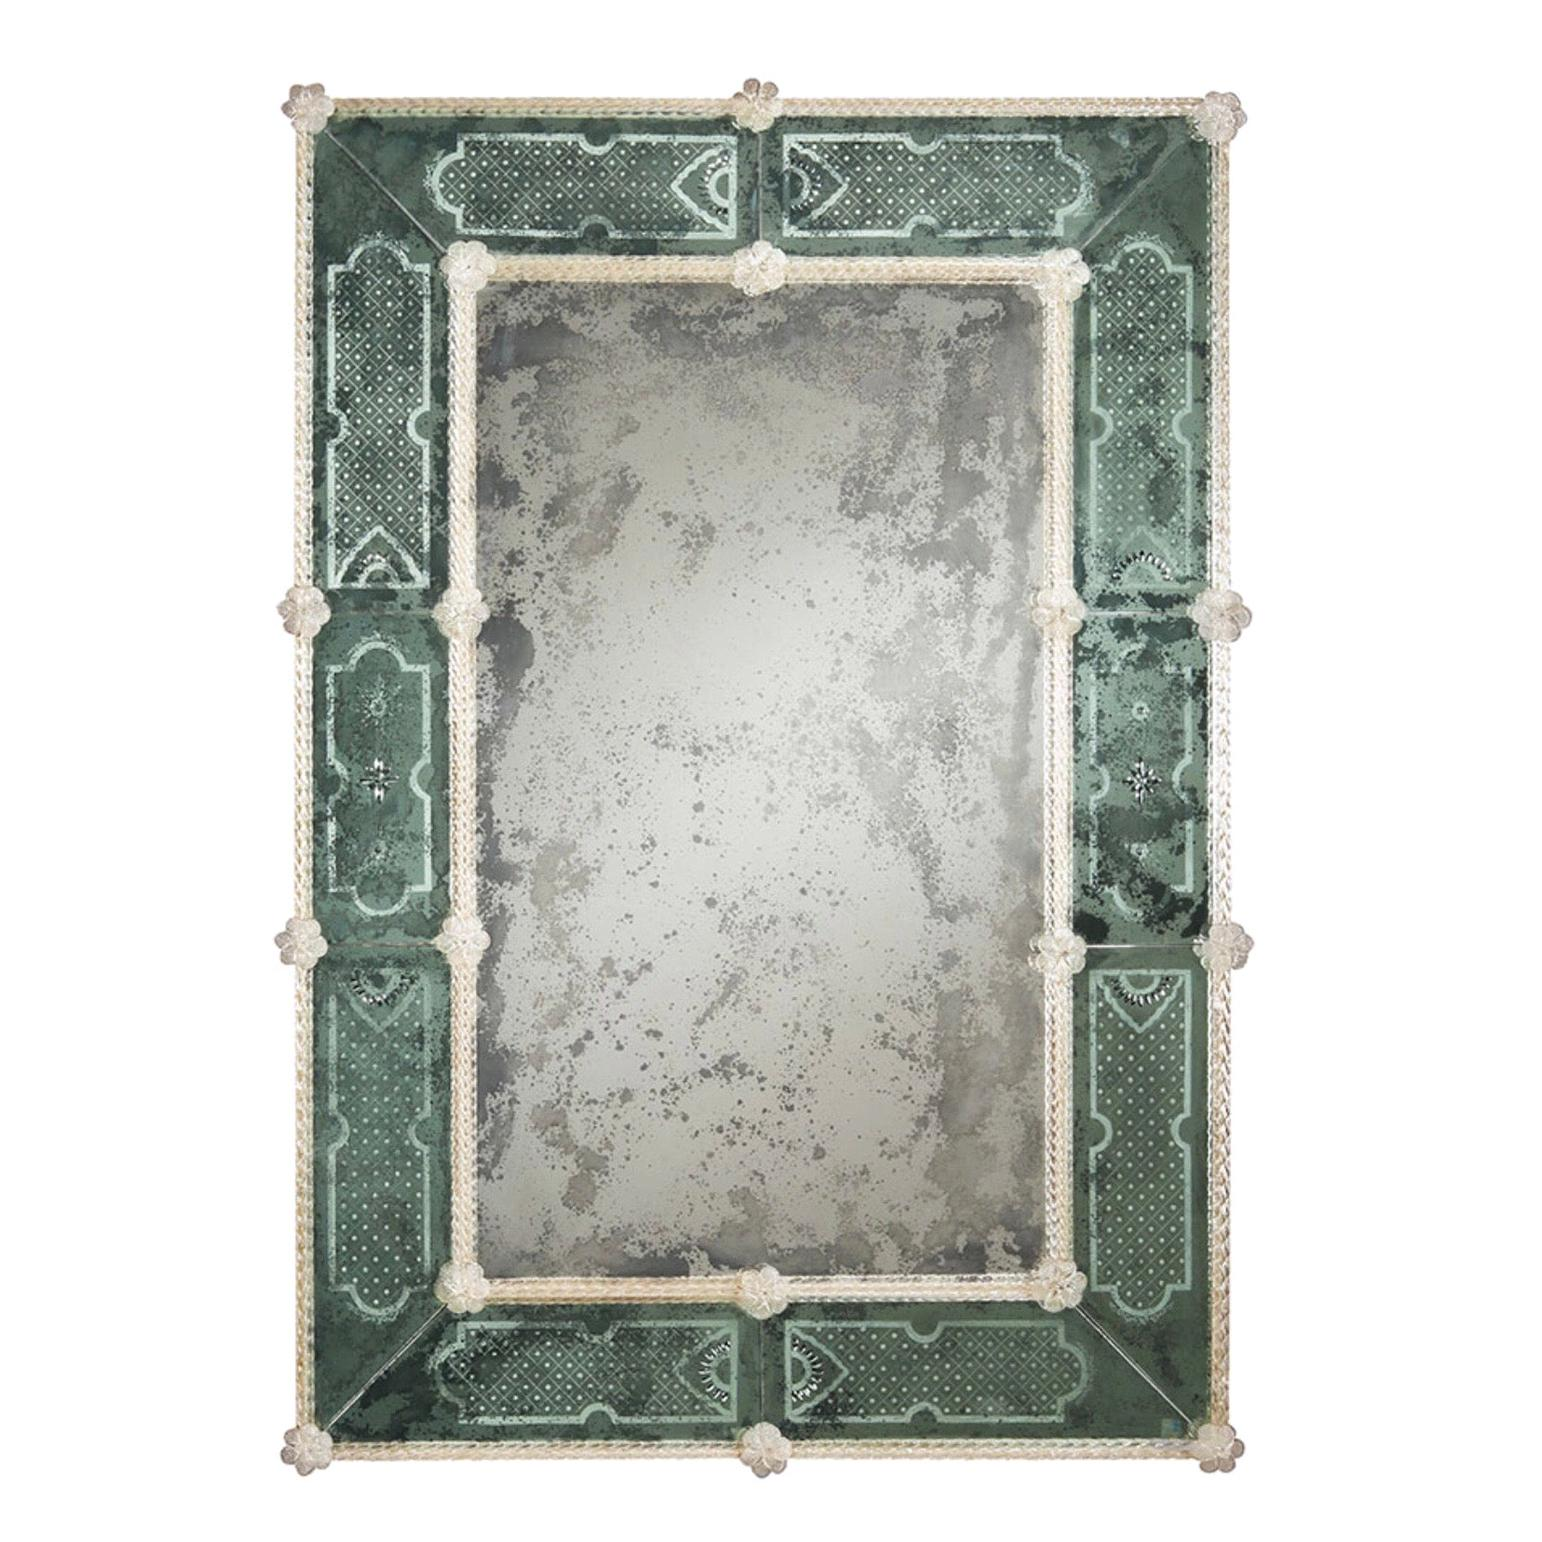 Italian 18th Century Style Antiqued and Etched Venetian /Murano Glass Mirror